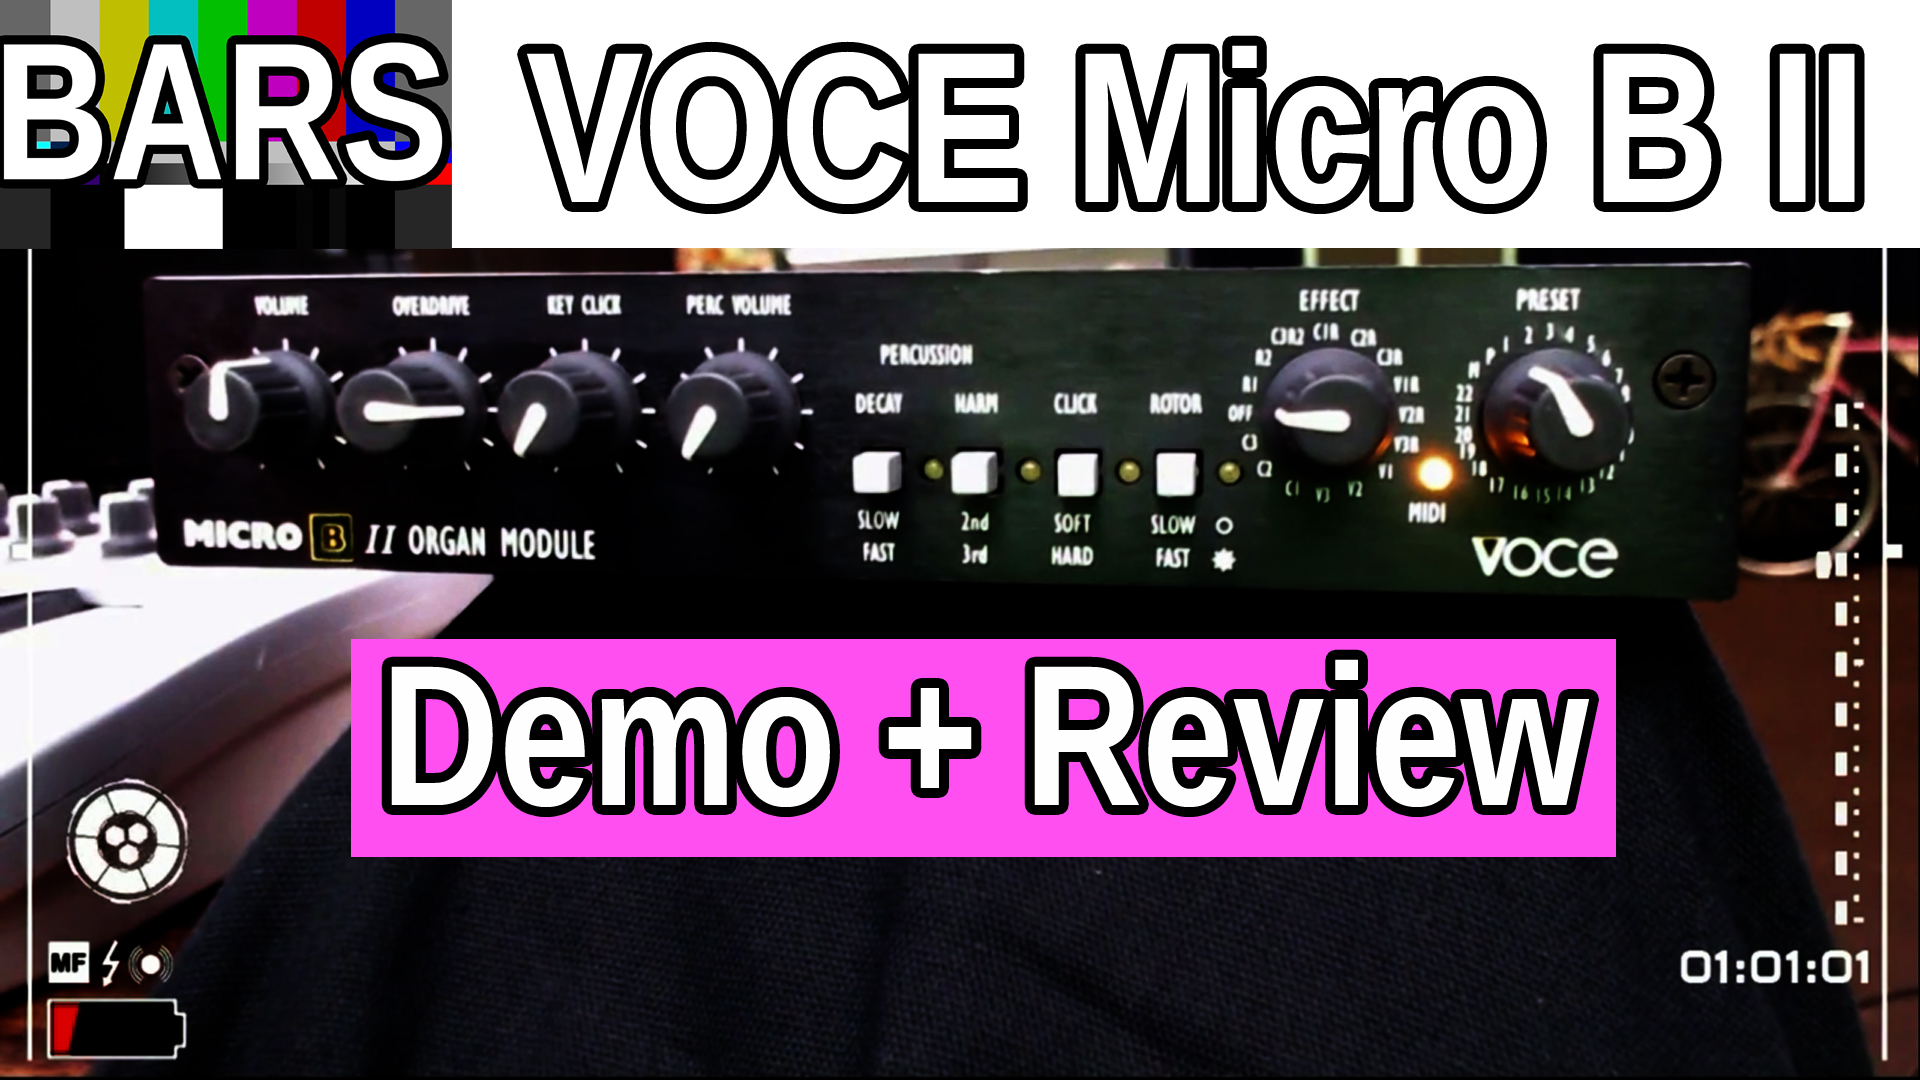 BARS | Introducing the Voce Micro B II | Demo and Review